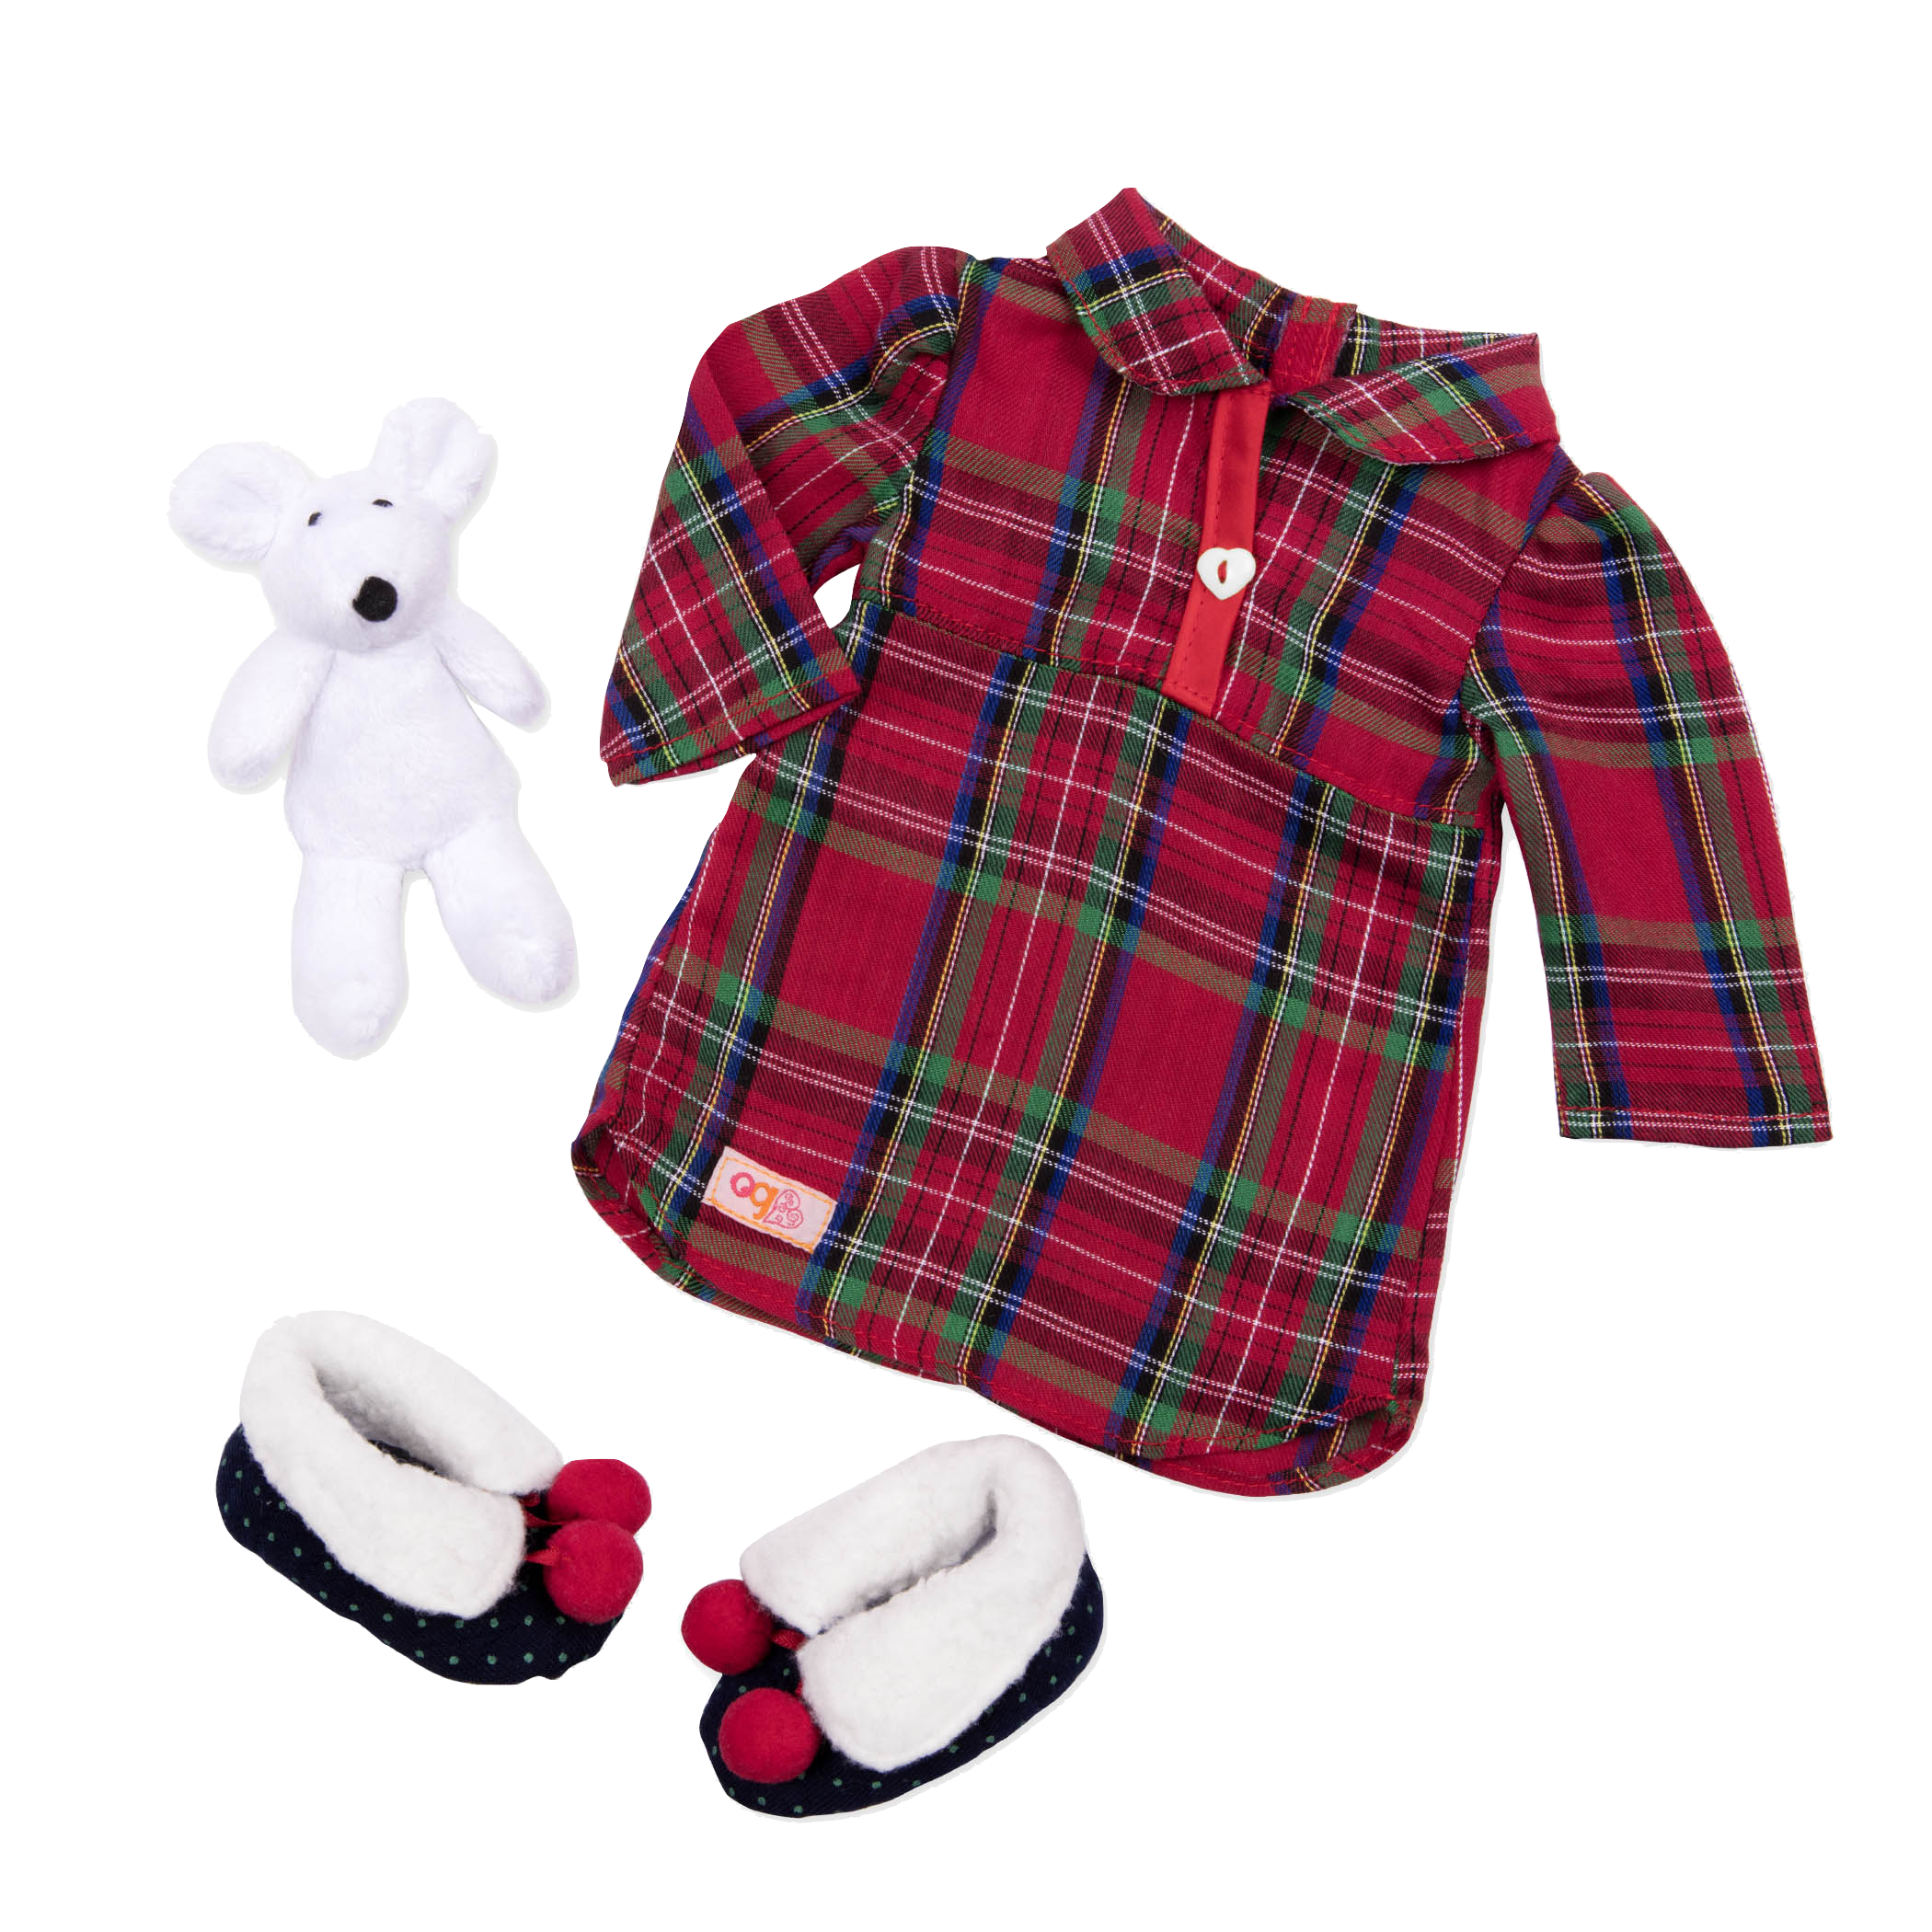 Nighty night Nightie holiday pajama outfit